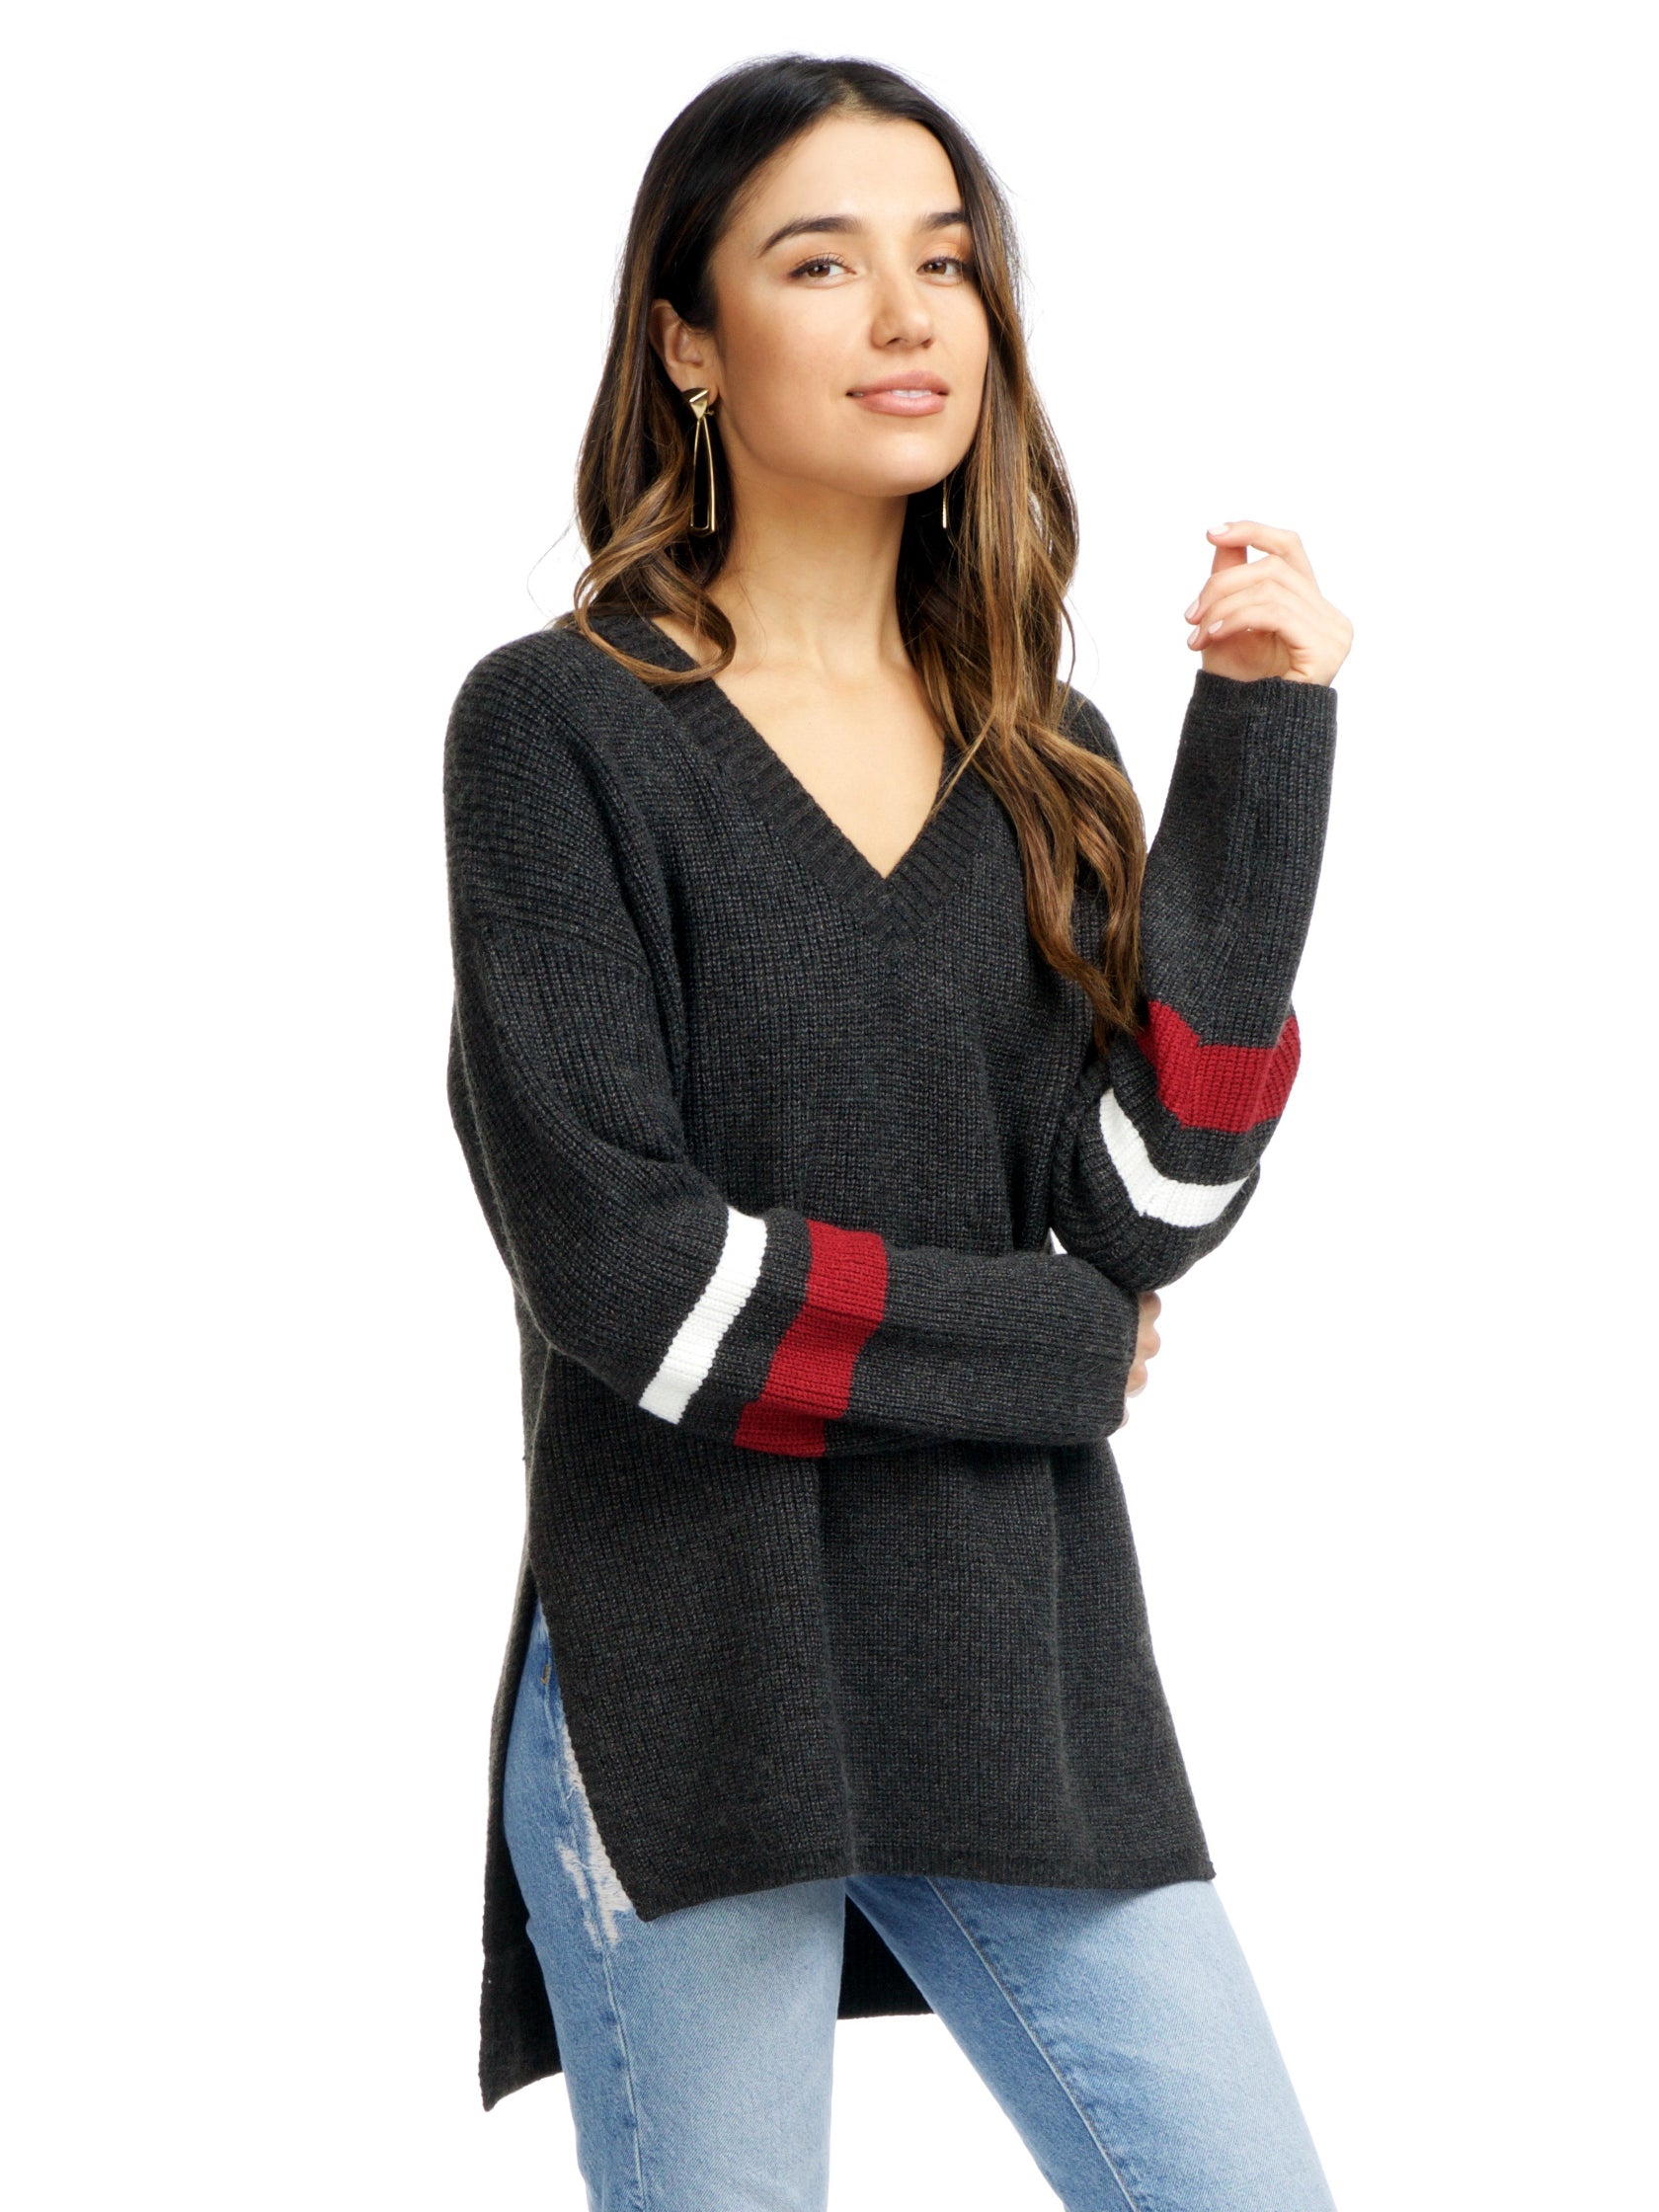 Women wearing a sweater rental from Strut & Bolt called Cutout Stripe Sweater